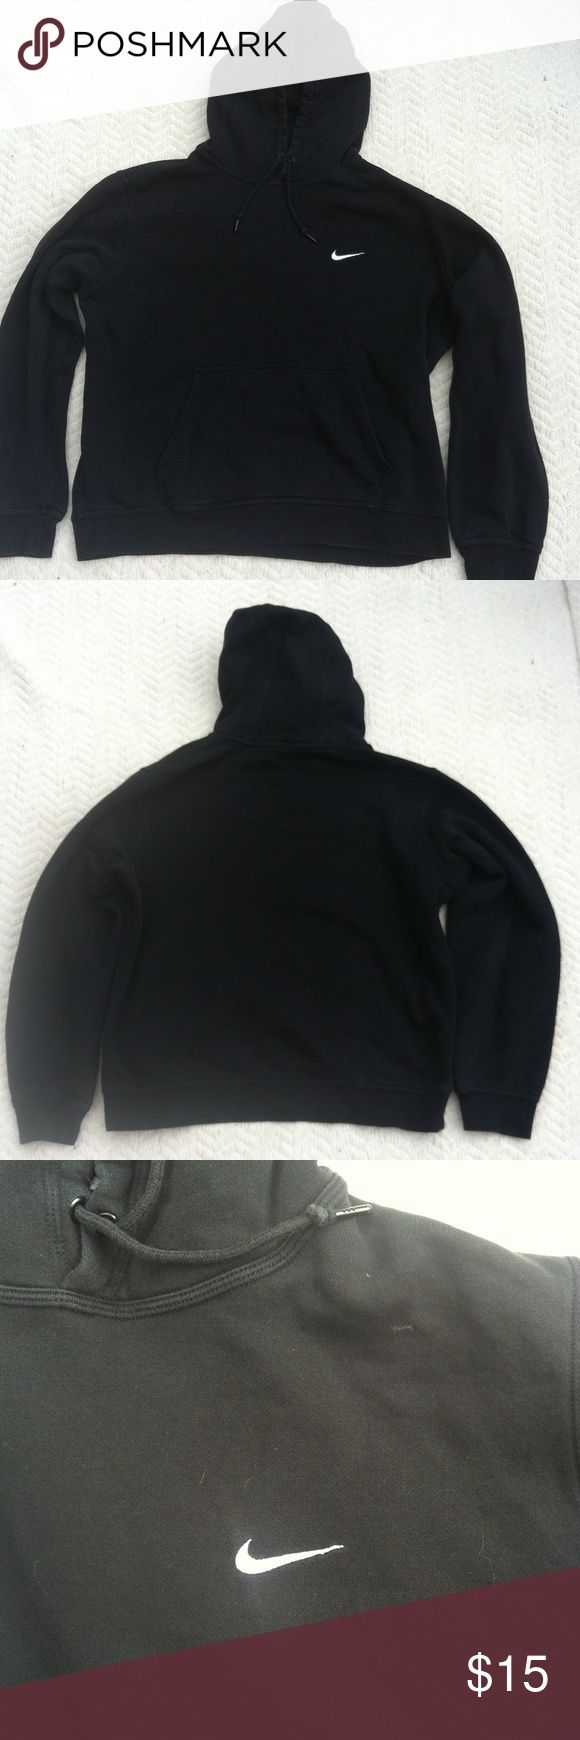 Nike sweatshirt Nike sweatshirt, black with white nike decal. Size is large. Could be men's or women's. Nike Tops Sweatshirts & Hoodies